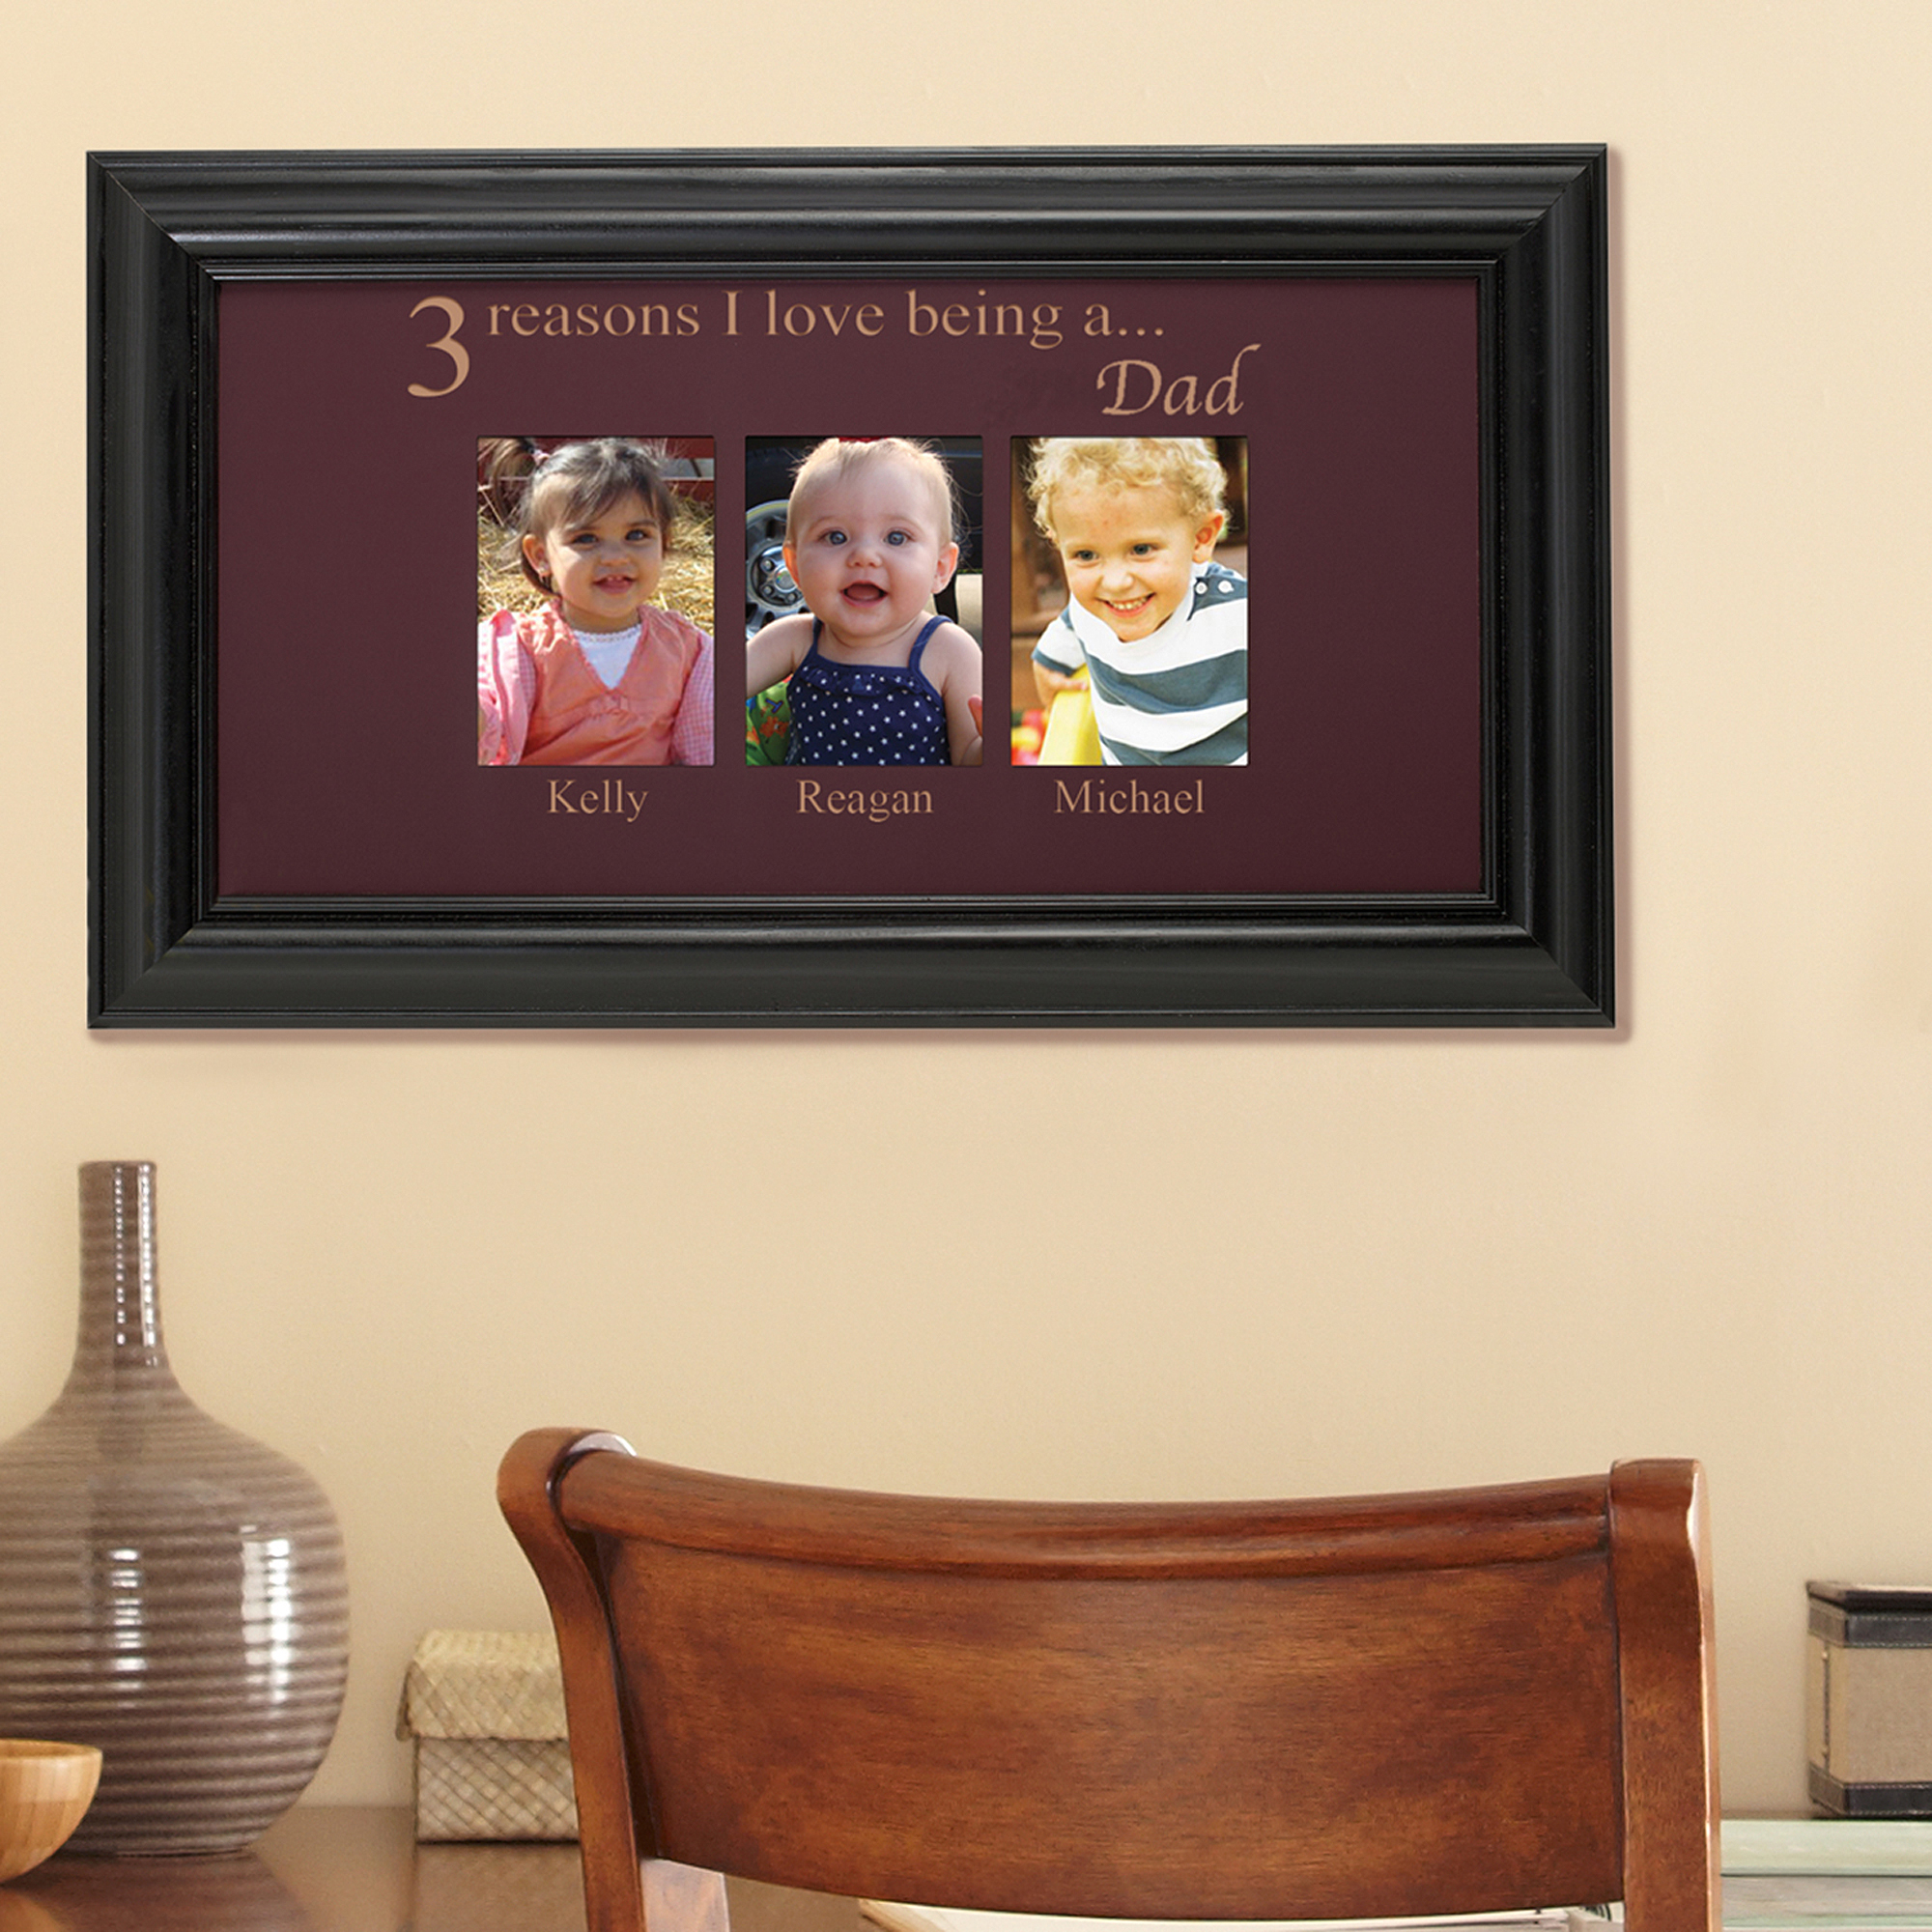 Personalized Reasons I Love Photo Frame, Two Photos